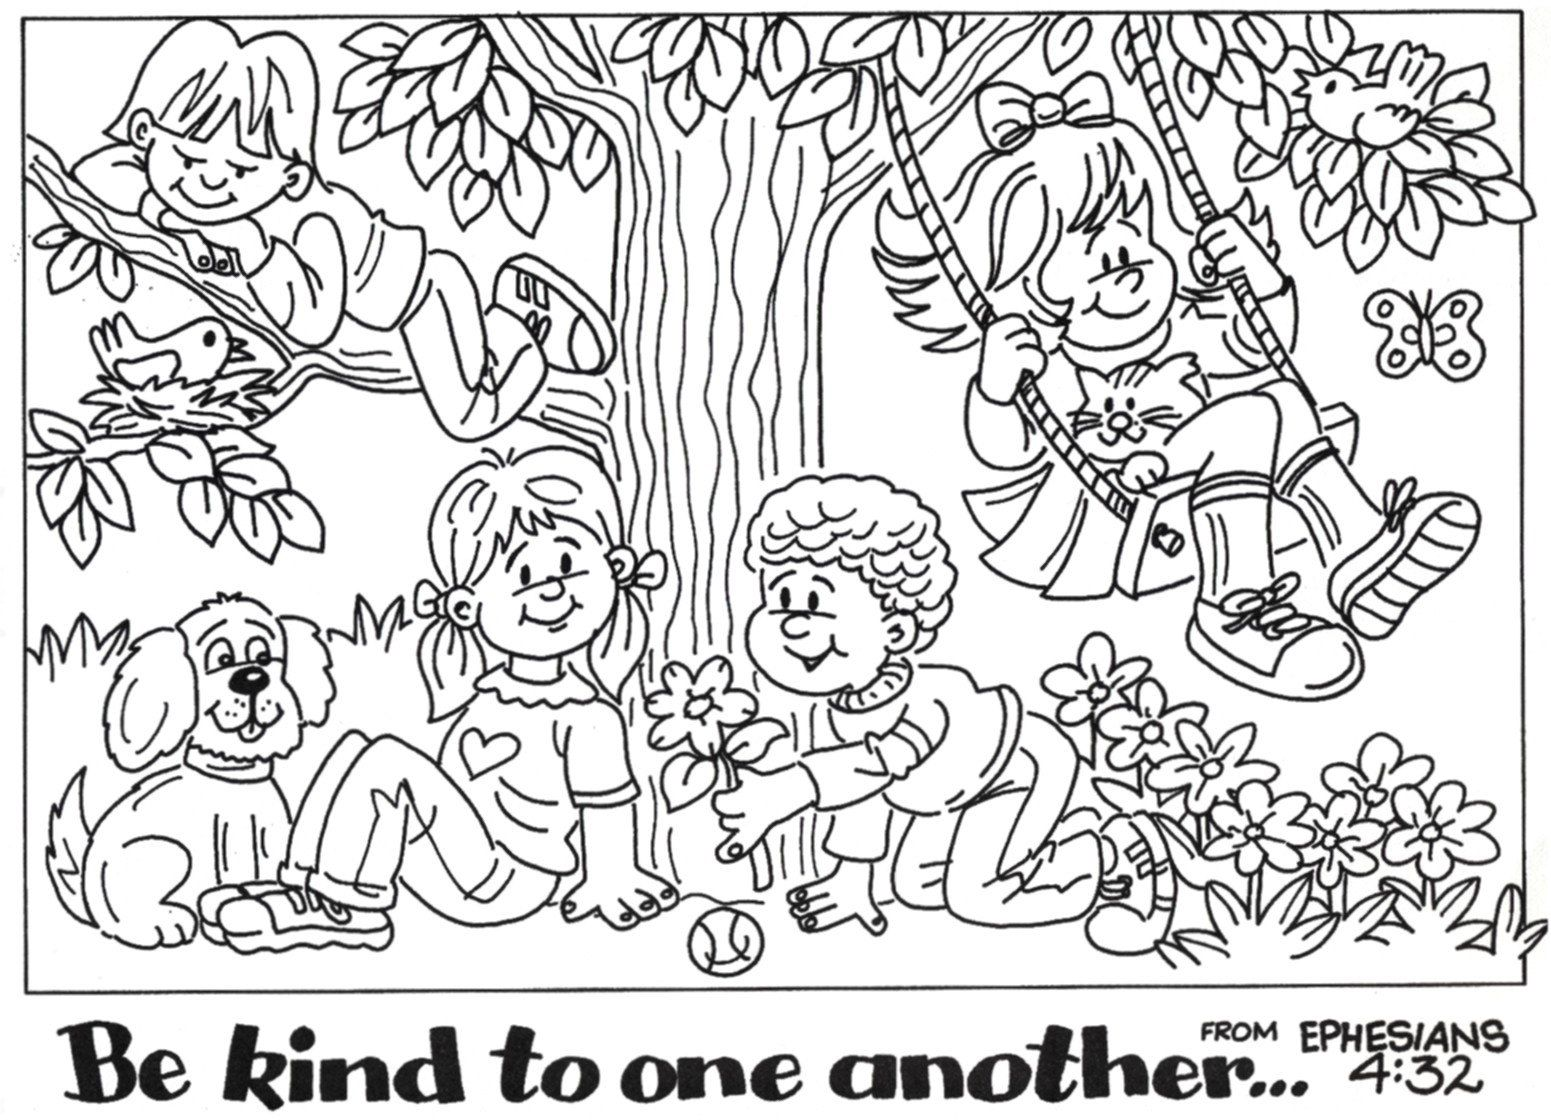 Kindness Coloring Pages Printable 1 M Bible Coloring Pages School Coloring Pages Christian Coloring